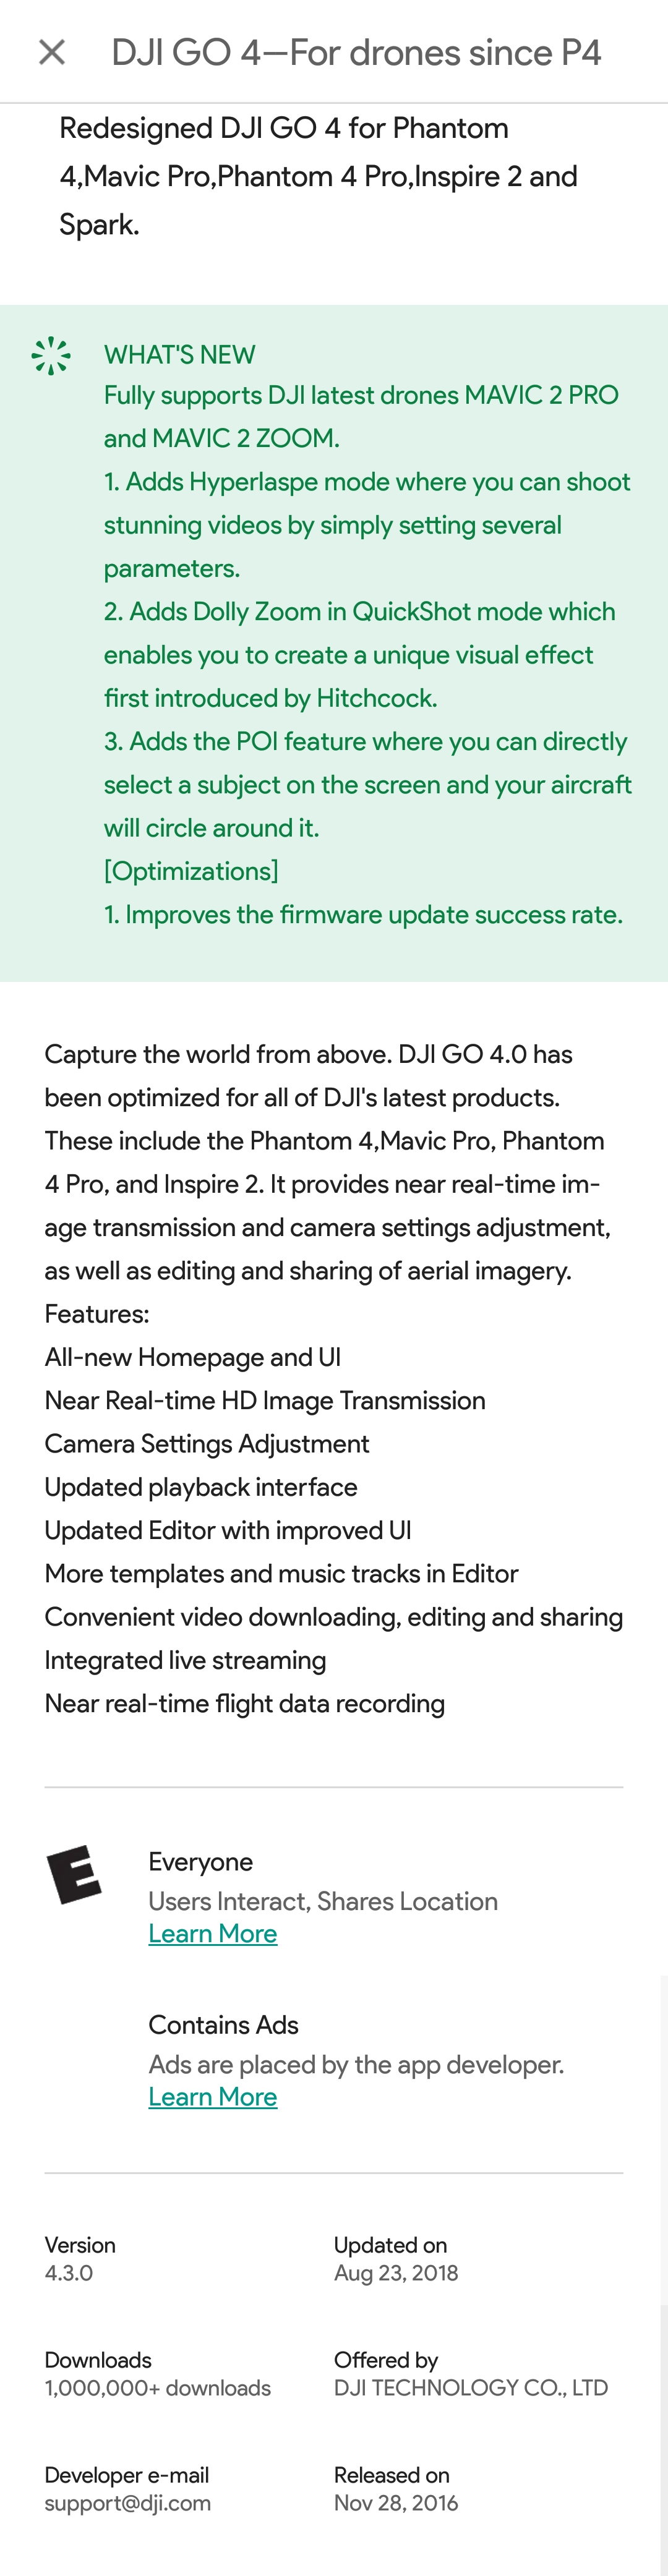 Play store just updated DJI GO 4 V  4 3 for Android | DJI FORUM